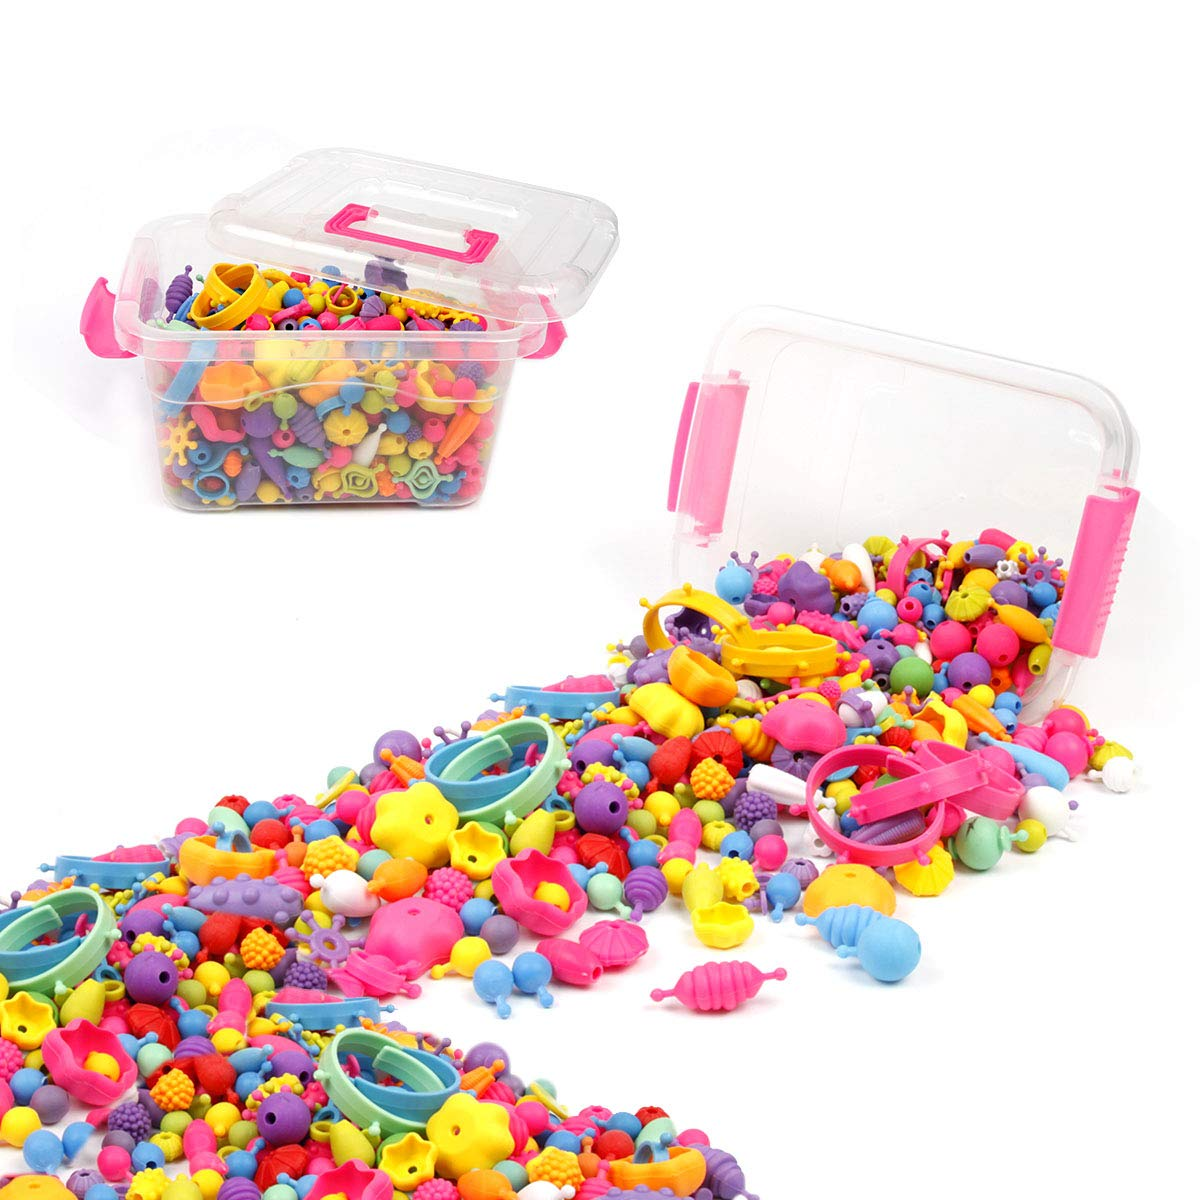 BUTEFO 485 PCS Pop Snap Beads Set Kids Toddlers Creative Jewelry Set Toys Making Necklace, Bracelet and Ring, Art Crafts Gifts for Girls